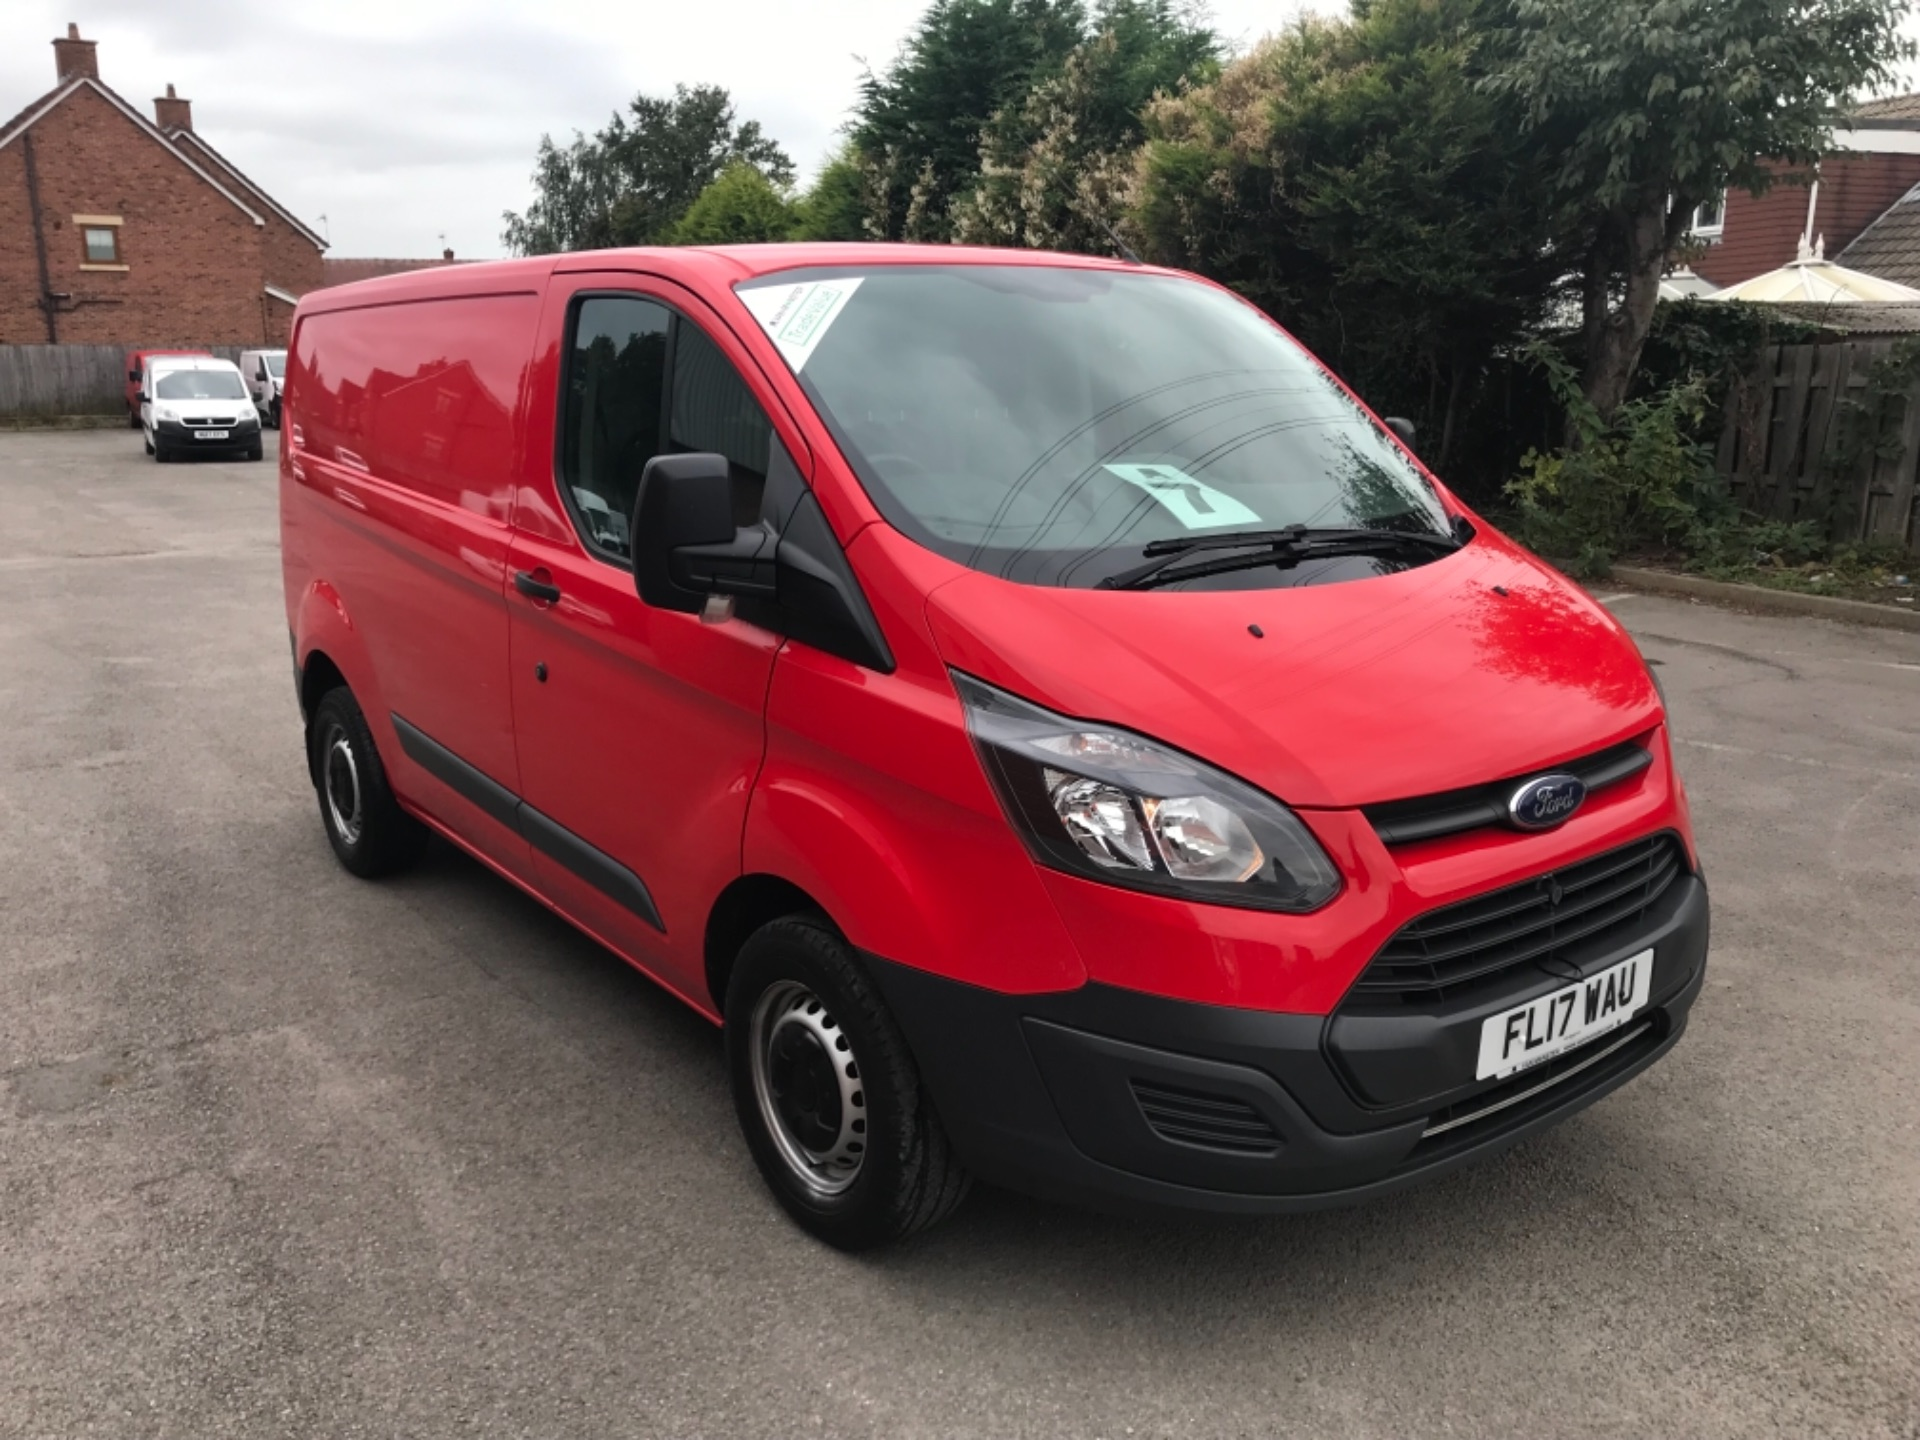 2017 Ford Transit Custom 2.0 Tdci 105Ps Low Roof Van EURO 6 (FL17WAU) Image 1